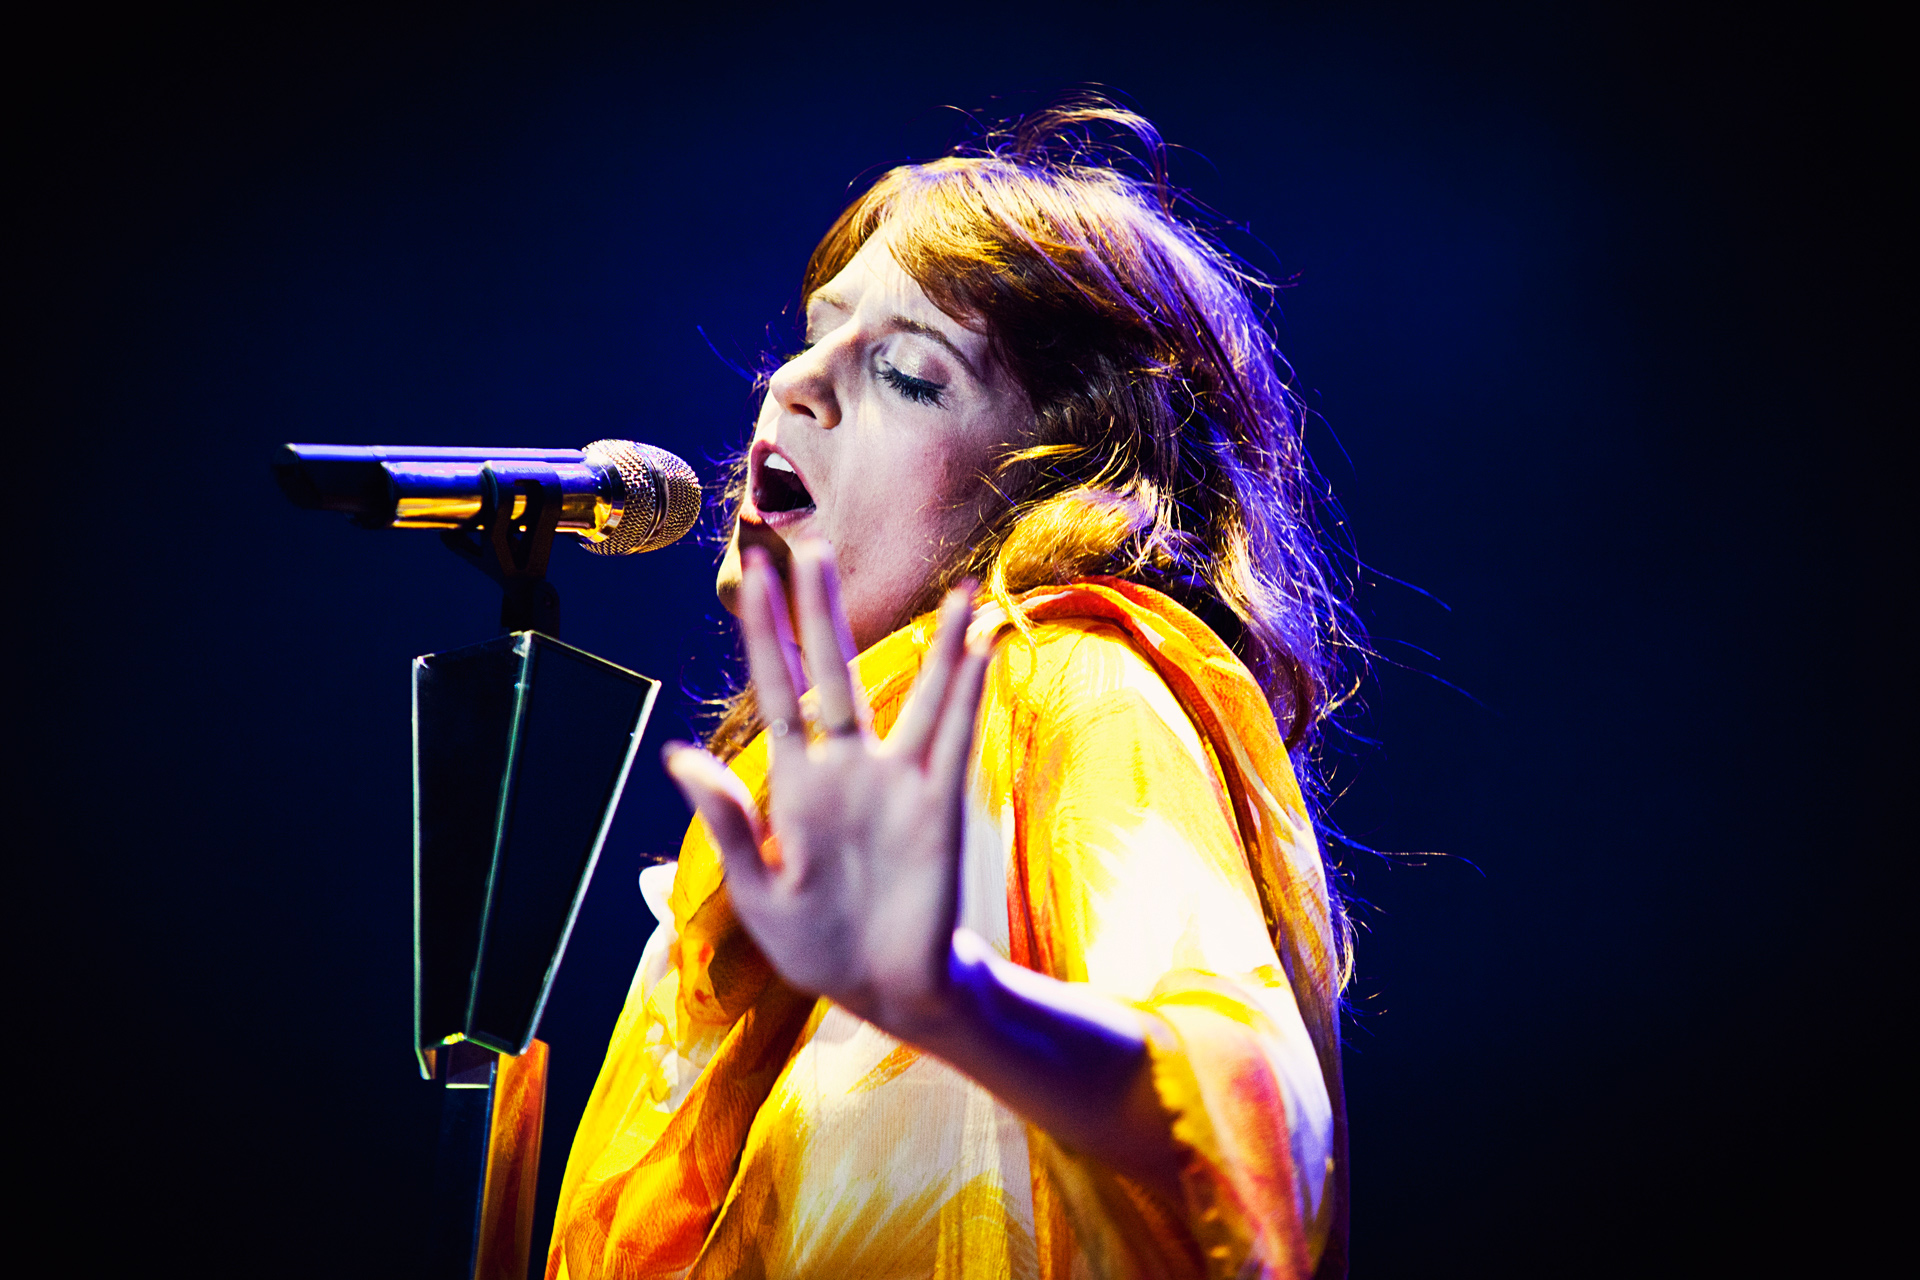 florence-and-the-machine-mariana-pekin-91